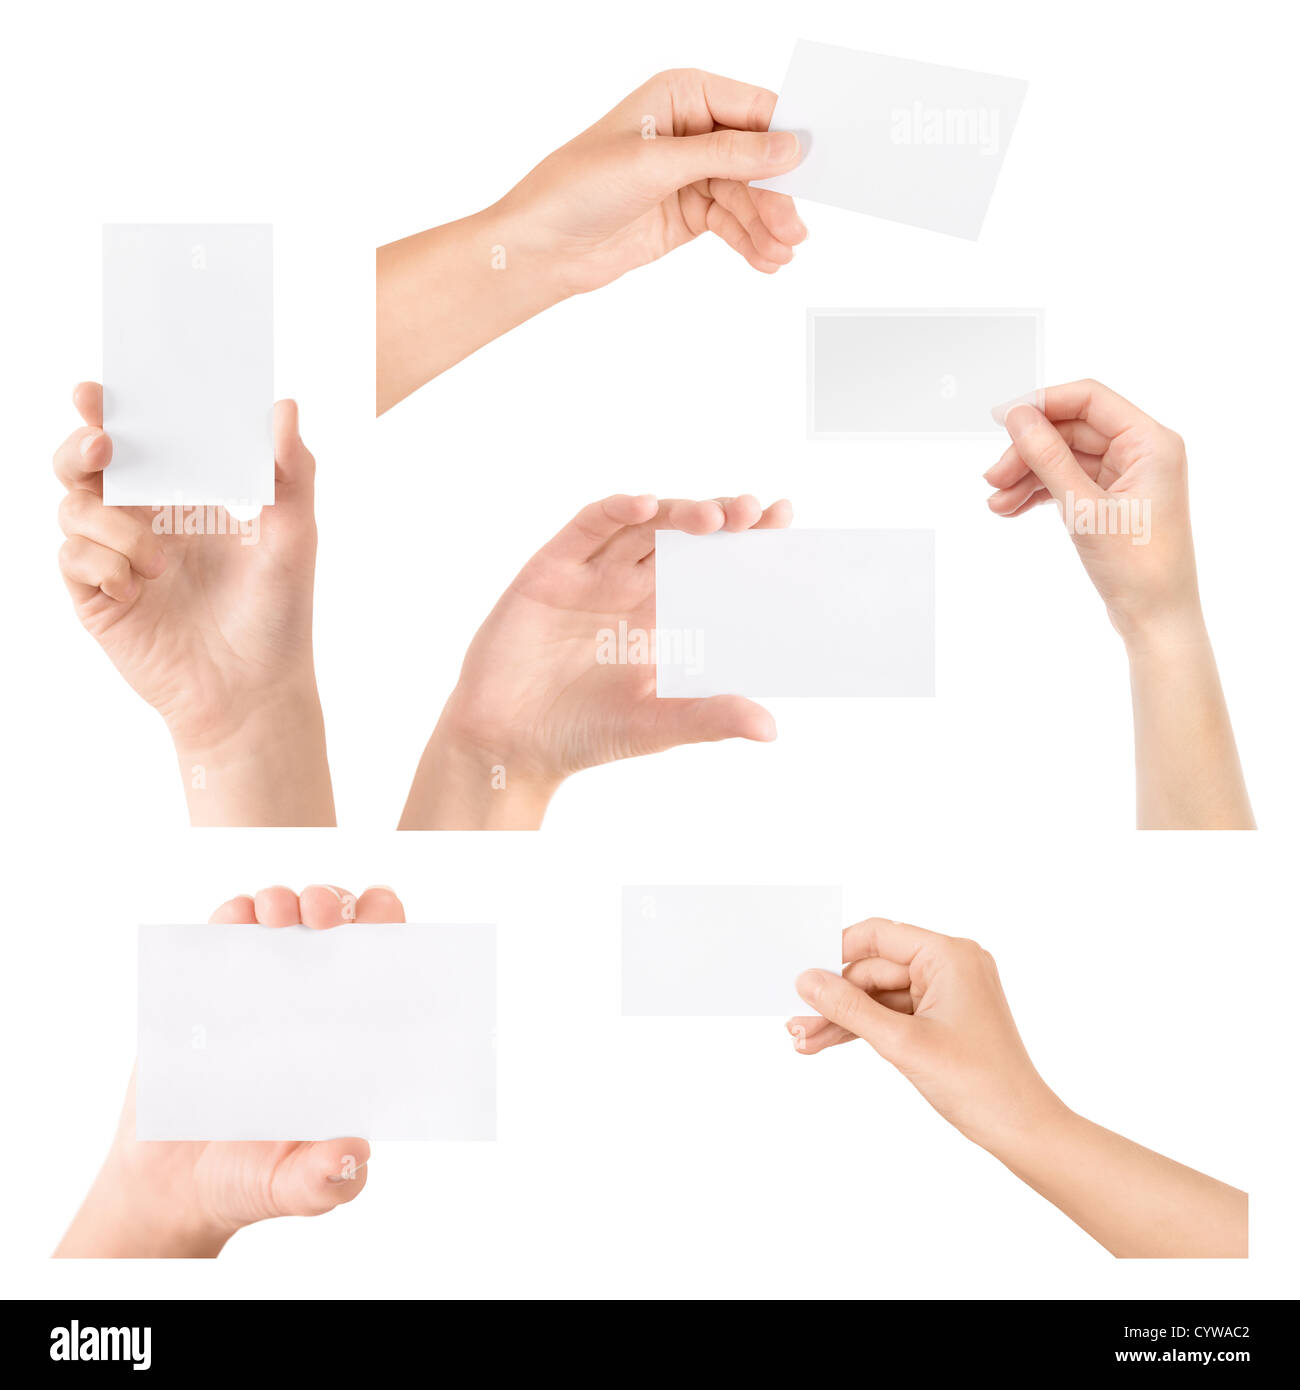 Female Hand Holding Blank Transparent Business Card In Collection Set Isolated On White